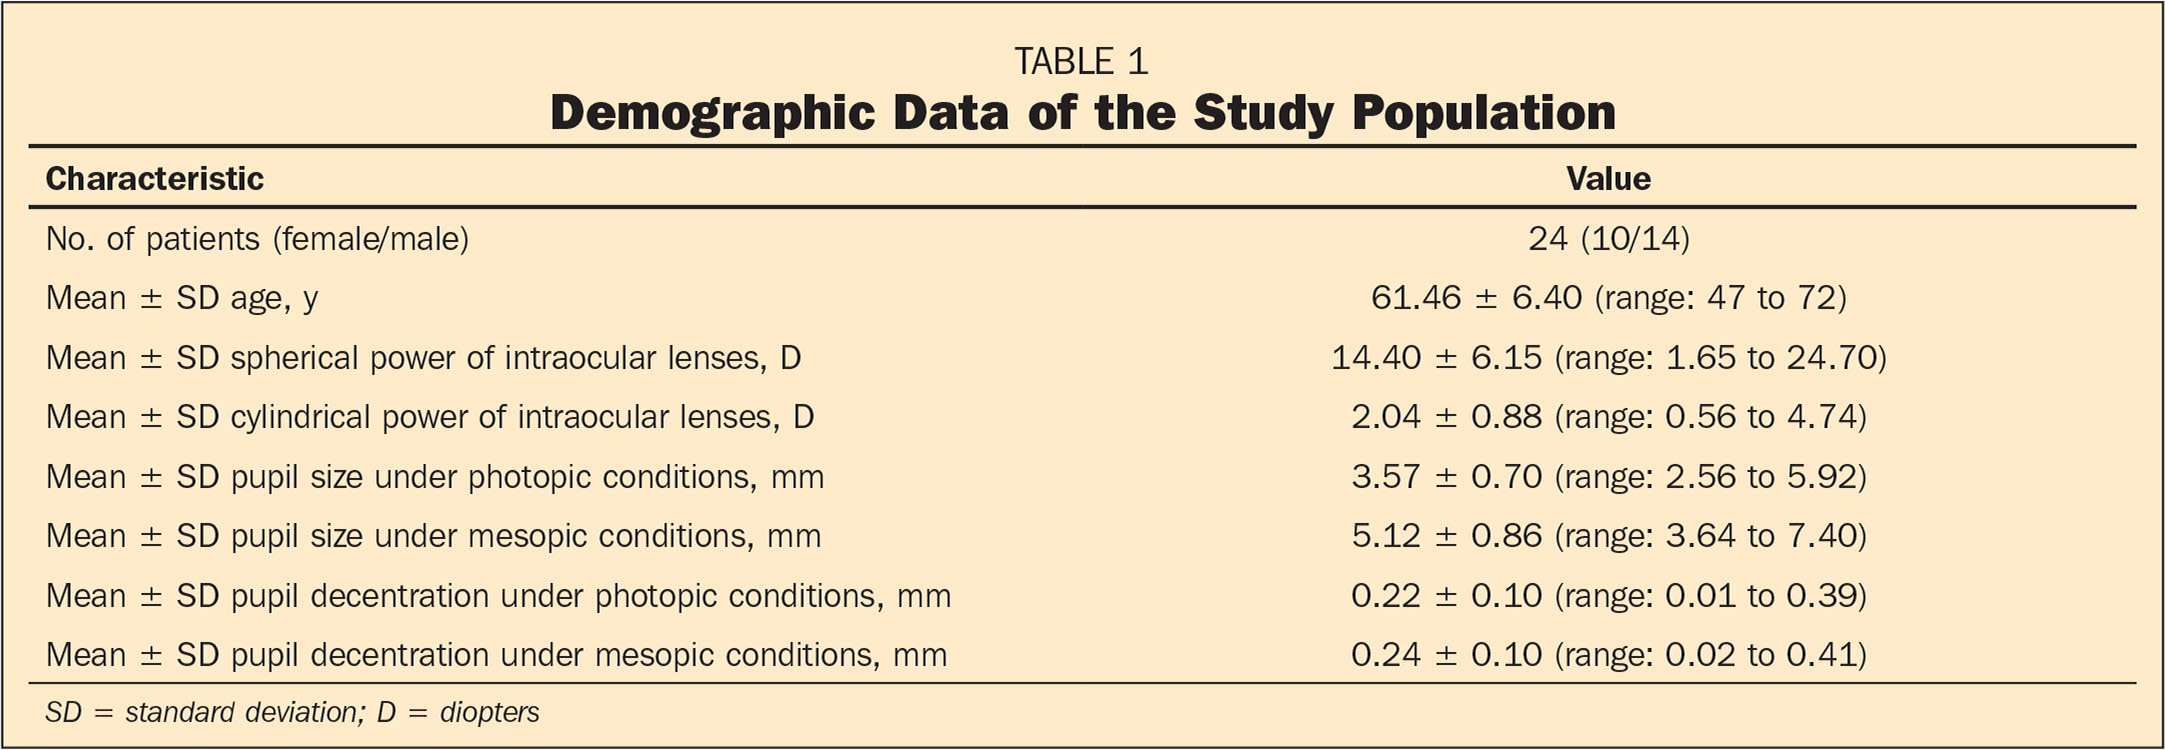 Demographic Data of the Study Population